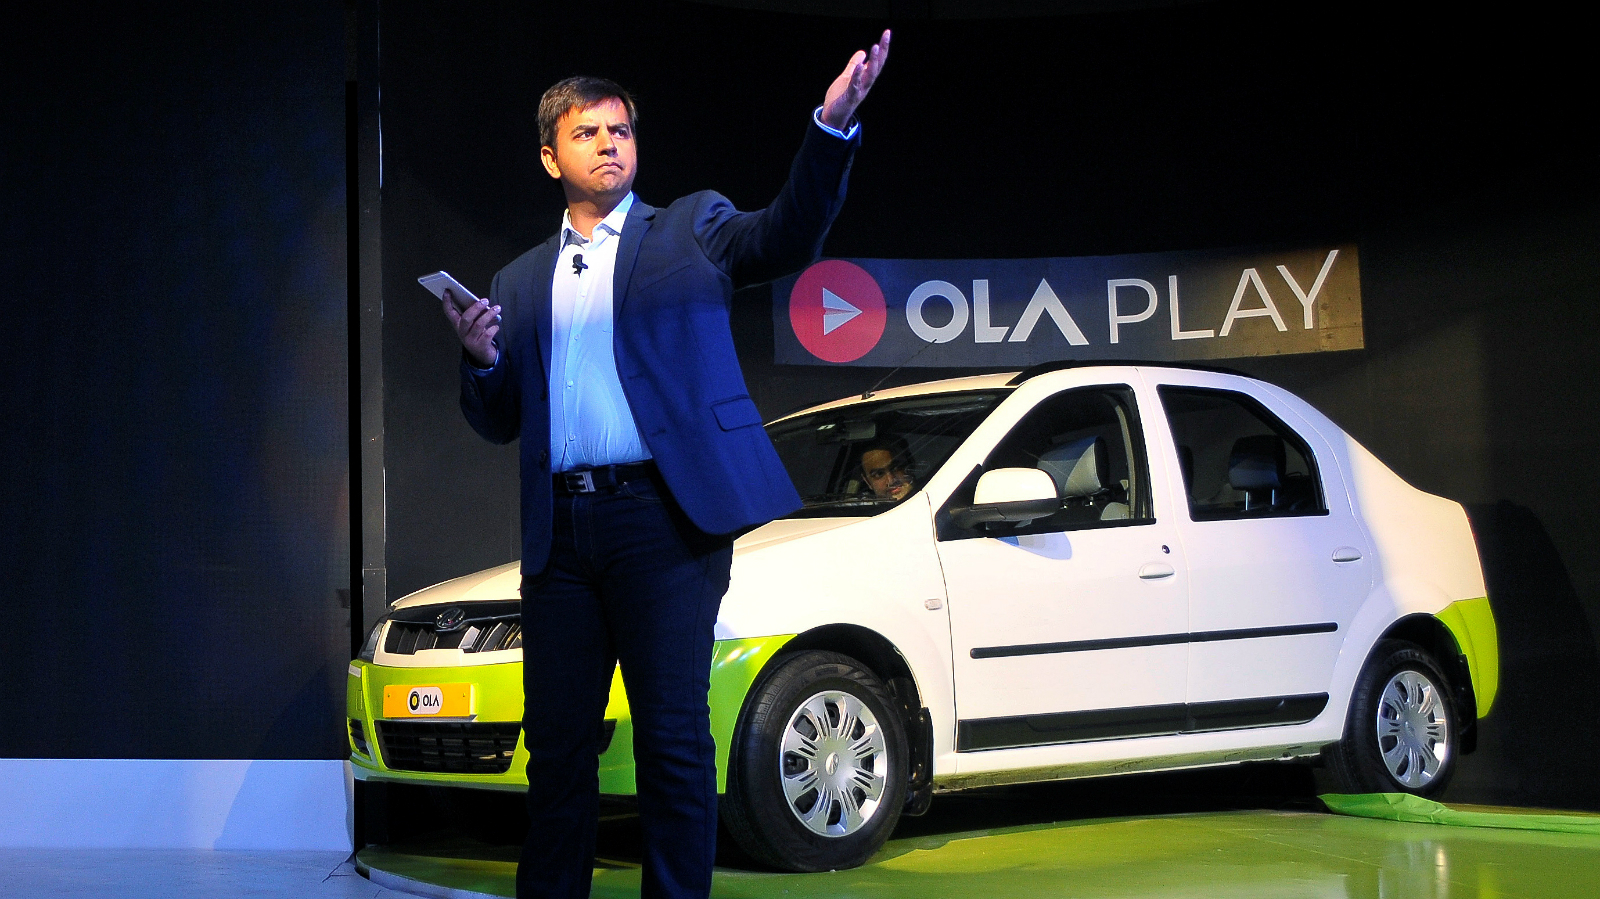 Bhavish Aggarwal, CEO and co-founder of Ola, gestures as he addresses the media during a news conference in Bengaluru, India, November 22, 2016.